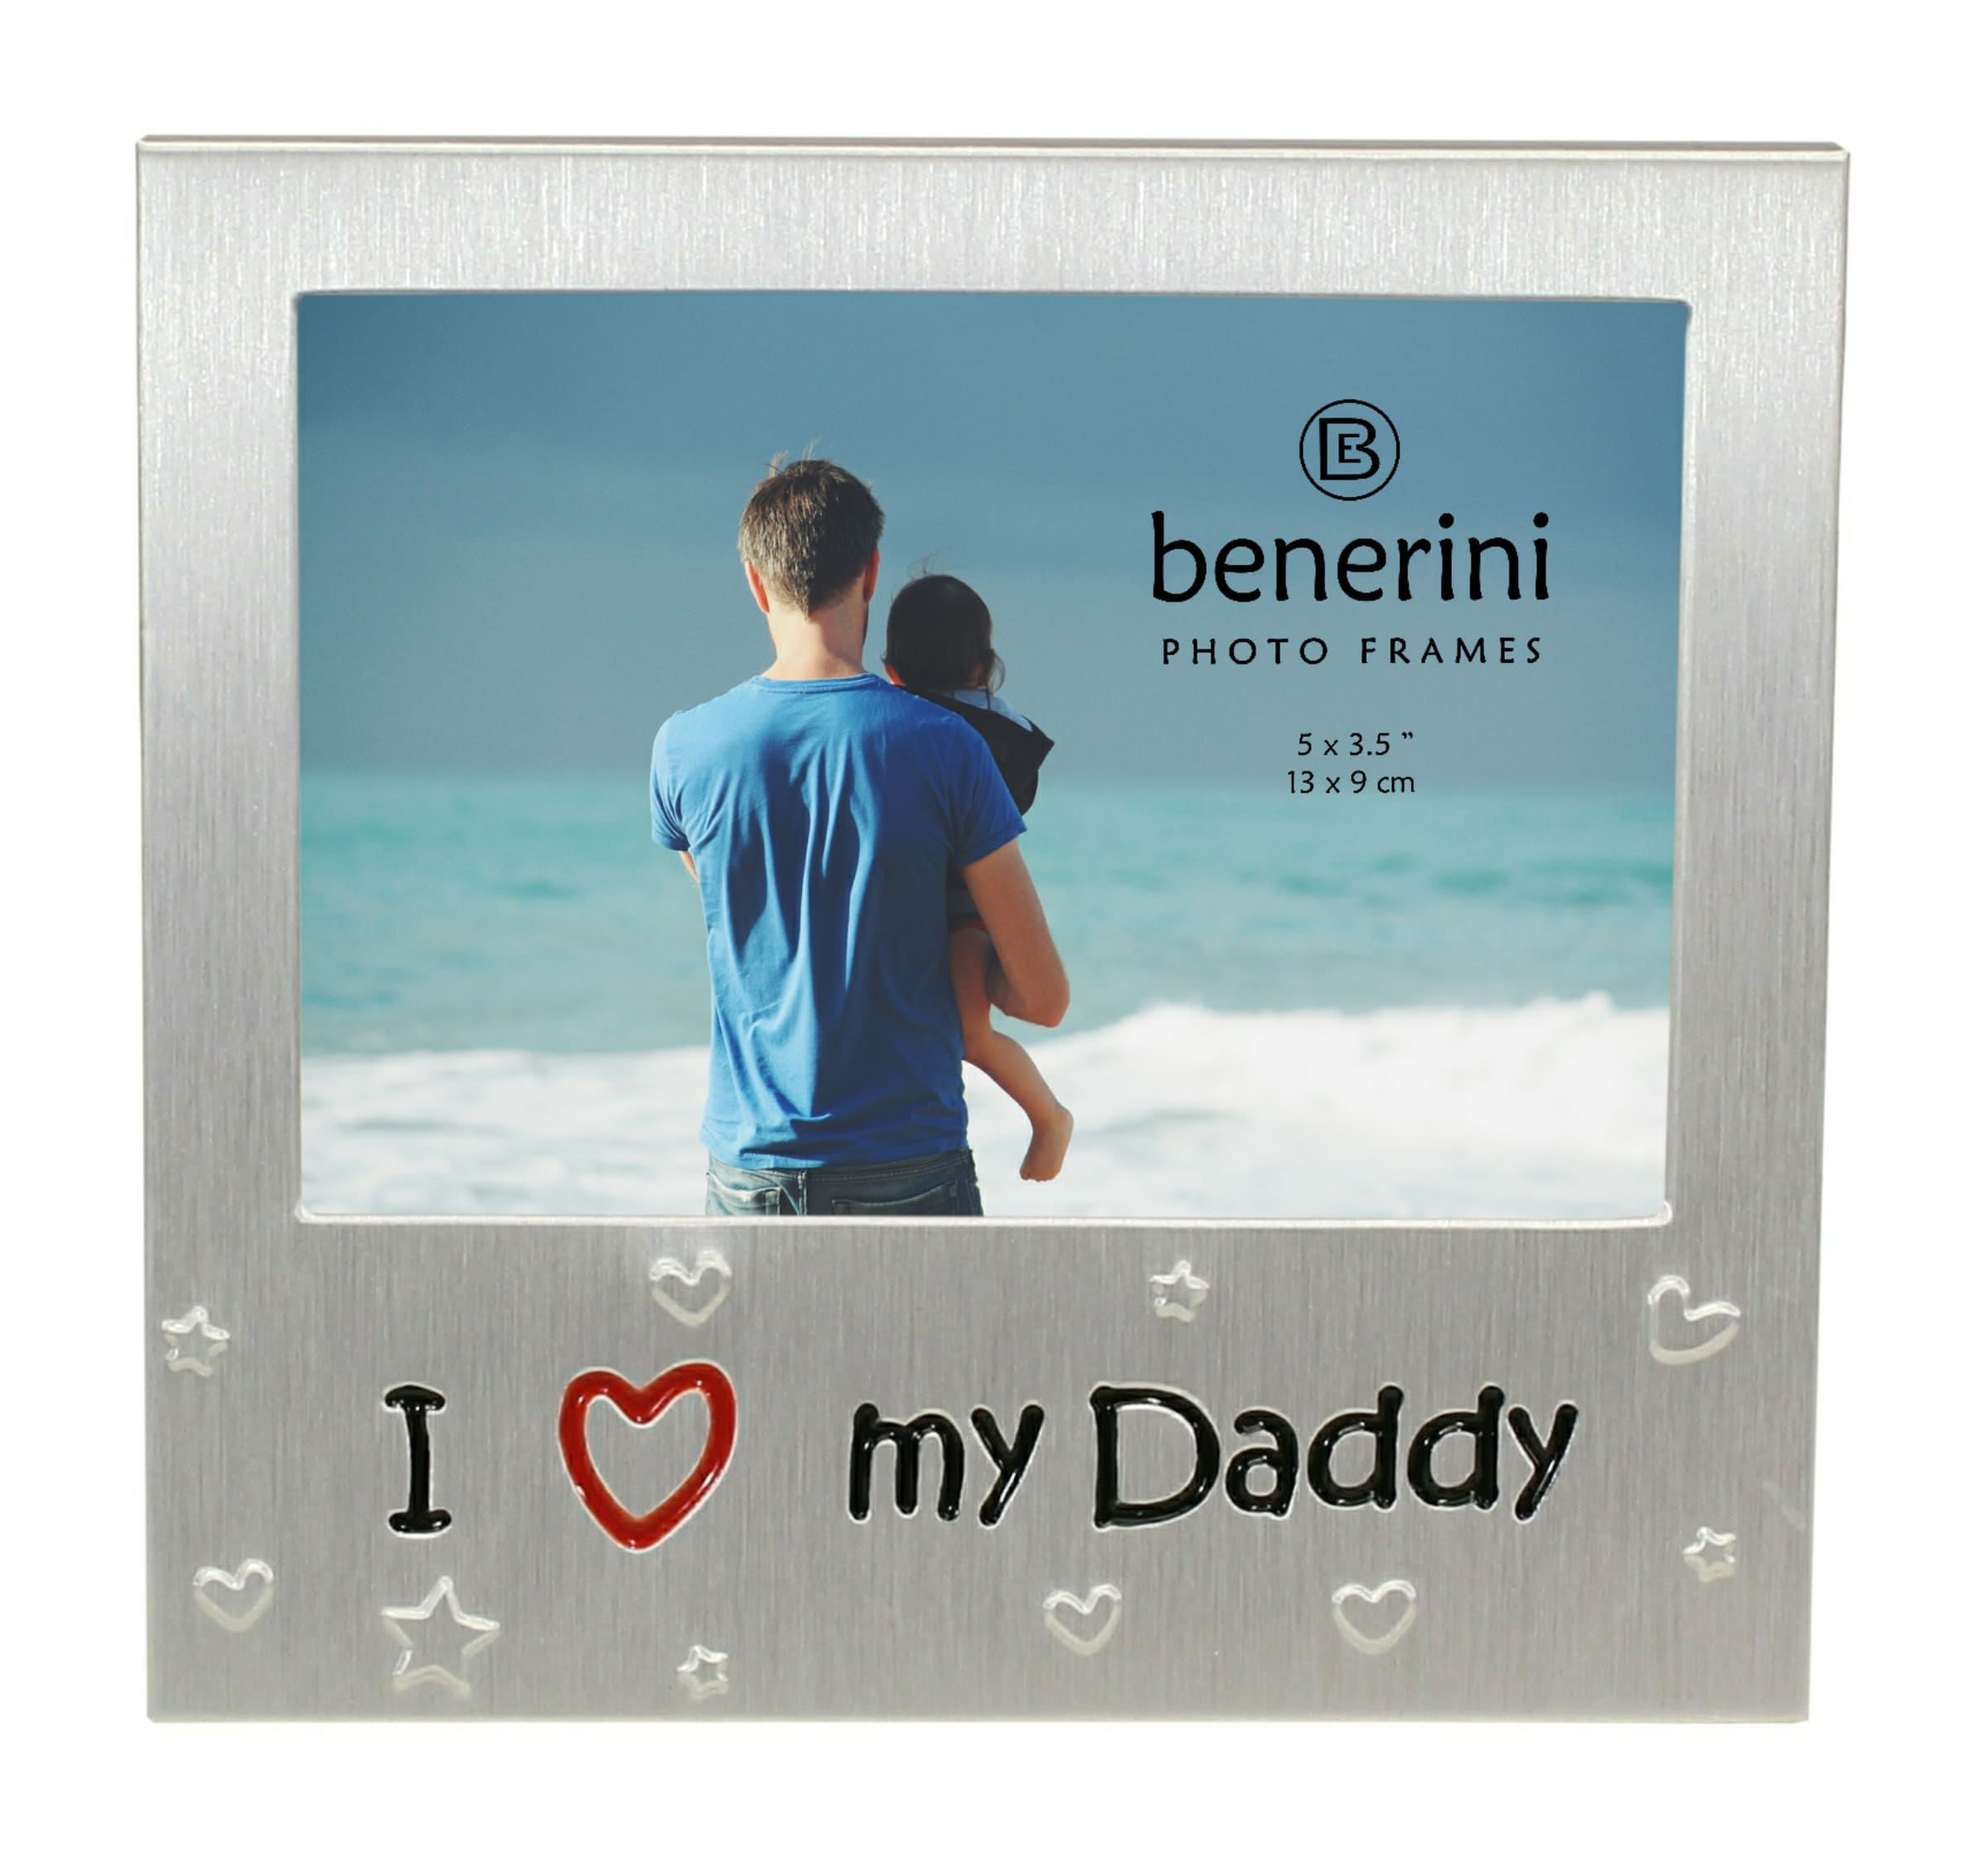 I Love My Daddy Photo Frame  5 X 35